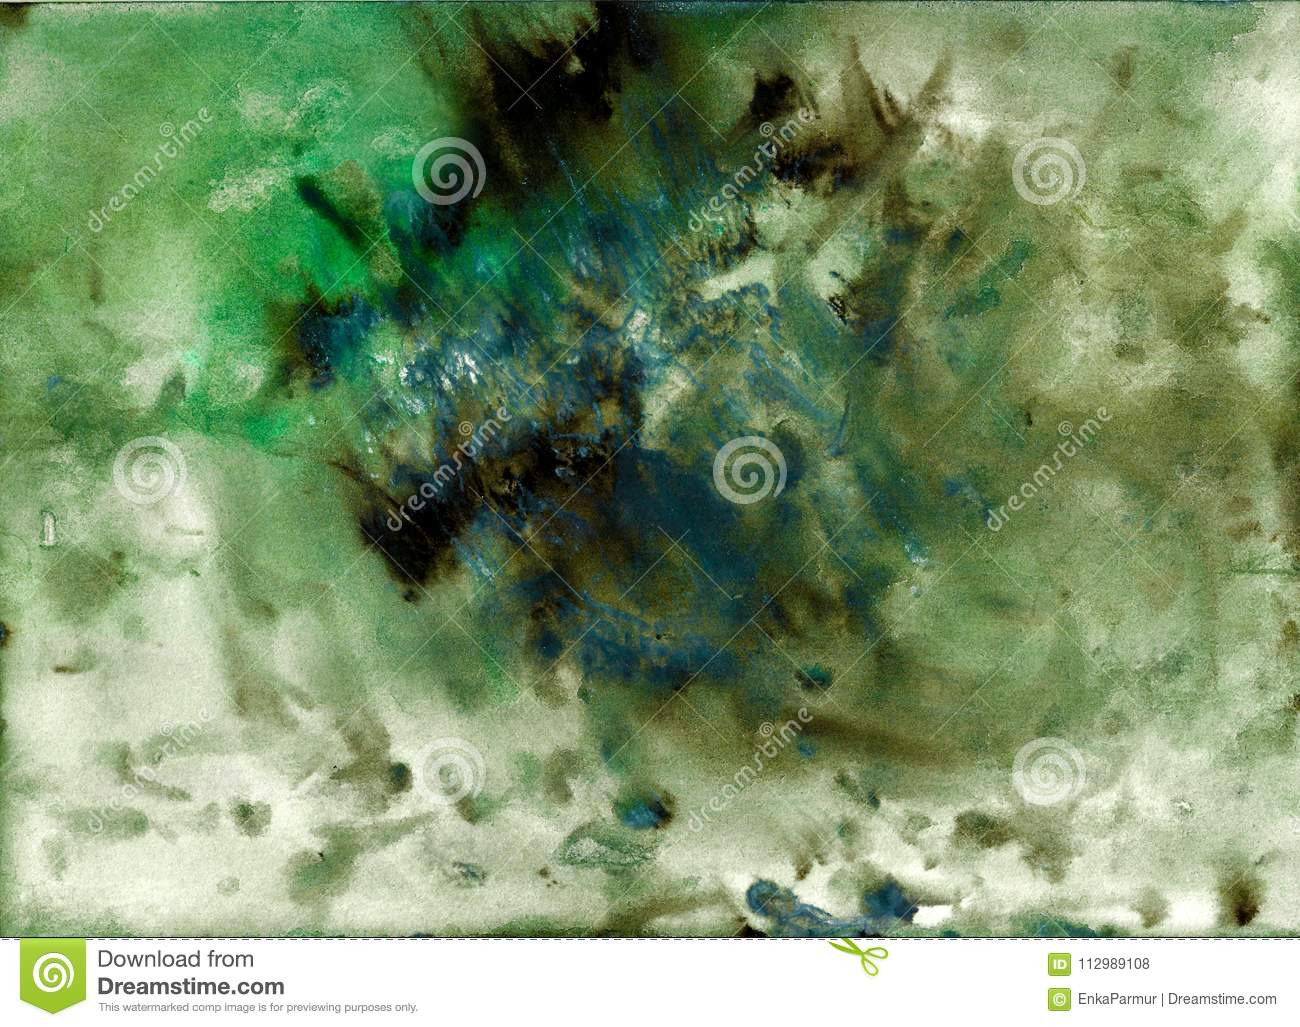 Abstract Acrylic Painted Background Mixed Green Black Blue Textured Vibrant Color Grunge Template For Your Design Composition Scrapbooking